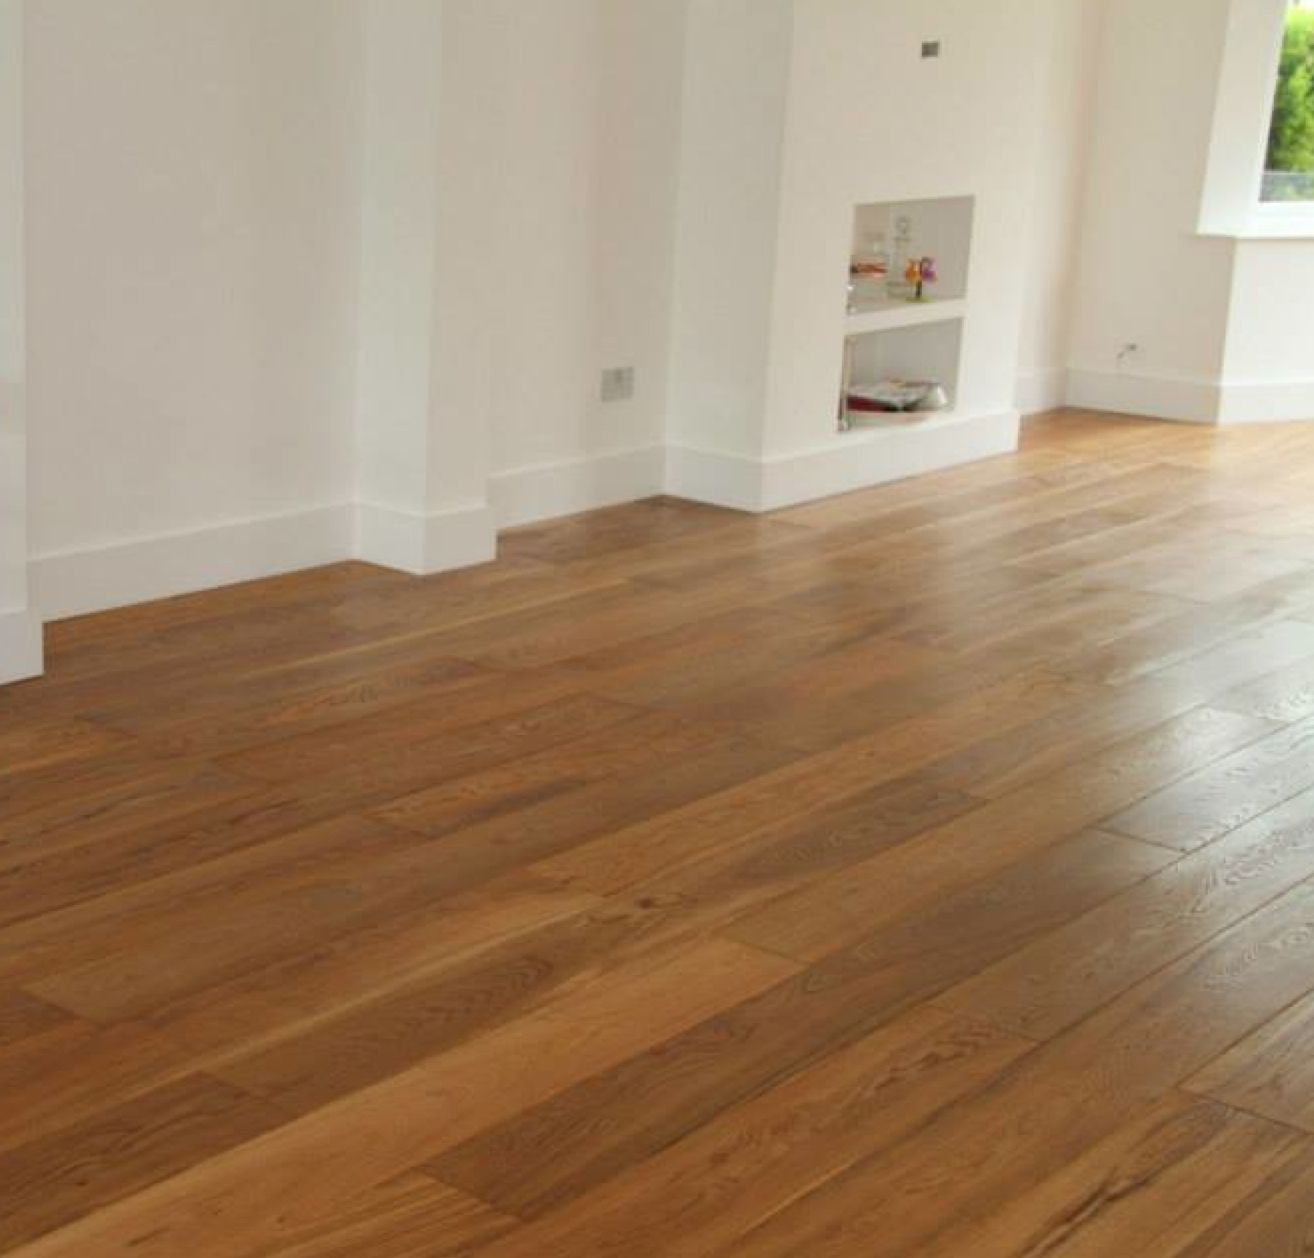 Short Random Or Long Length Wood Flooring Boards Wood